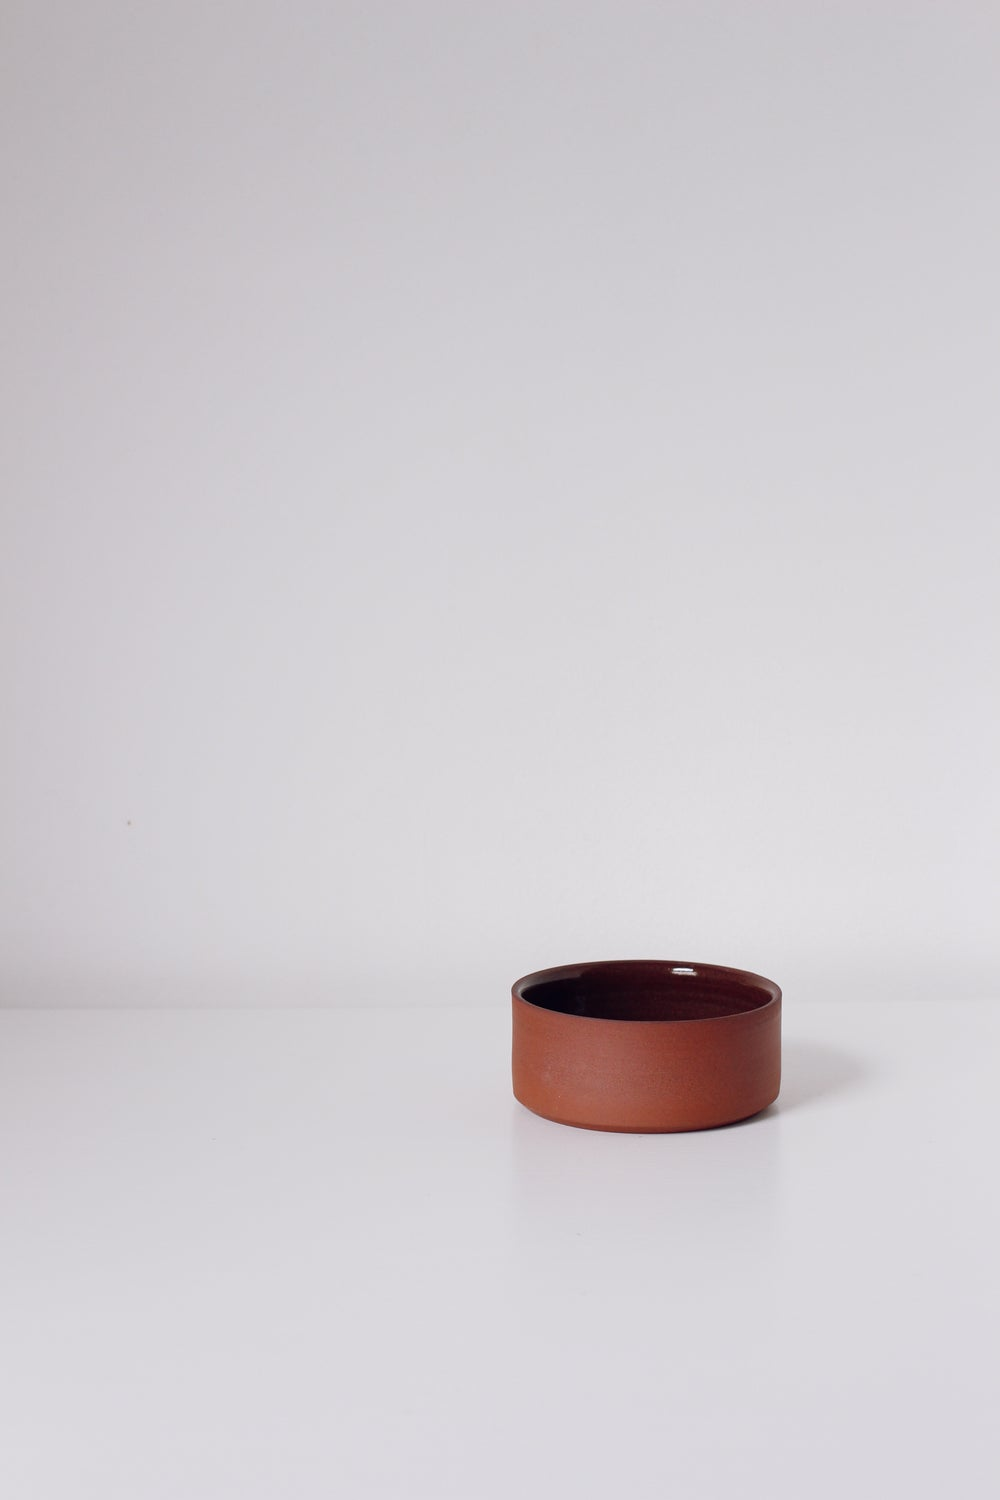 Image of Breakfast Bowl Terracotta